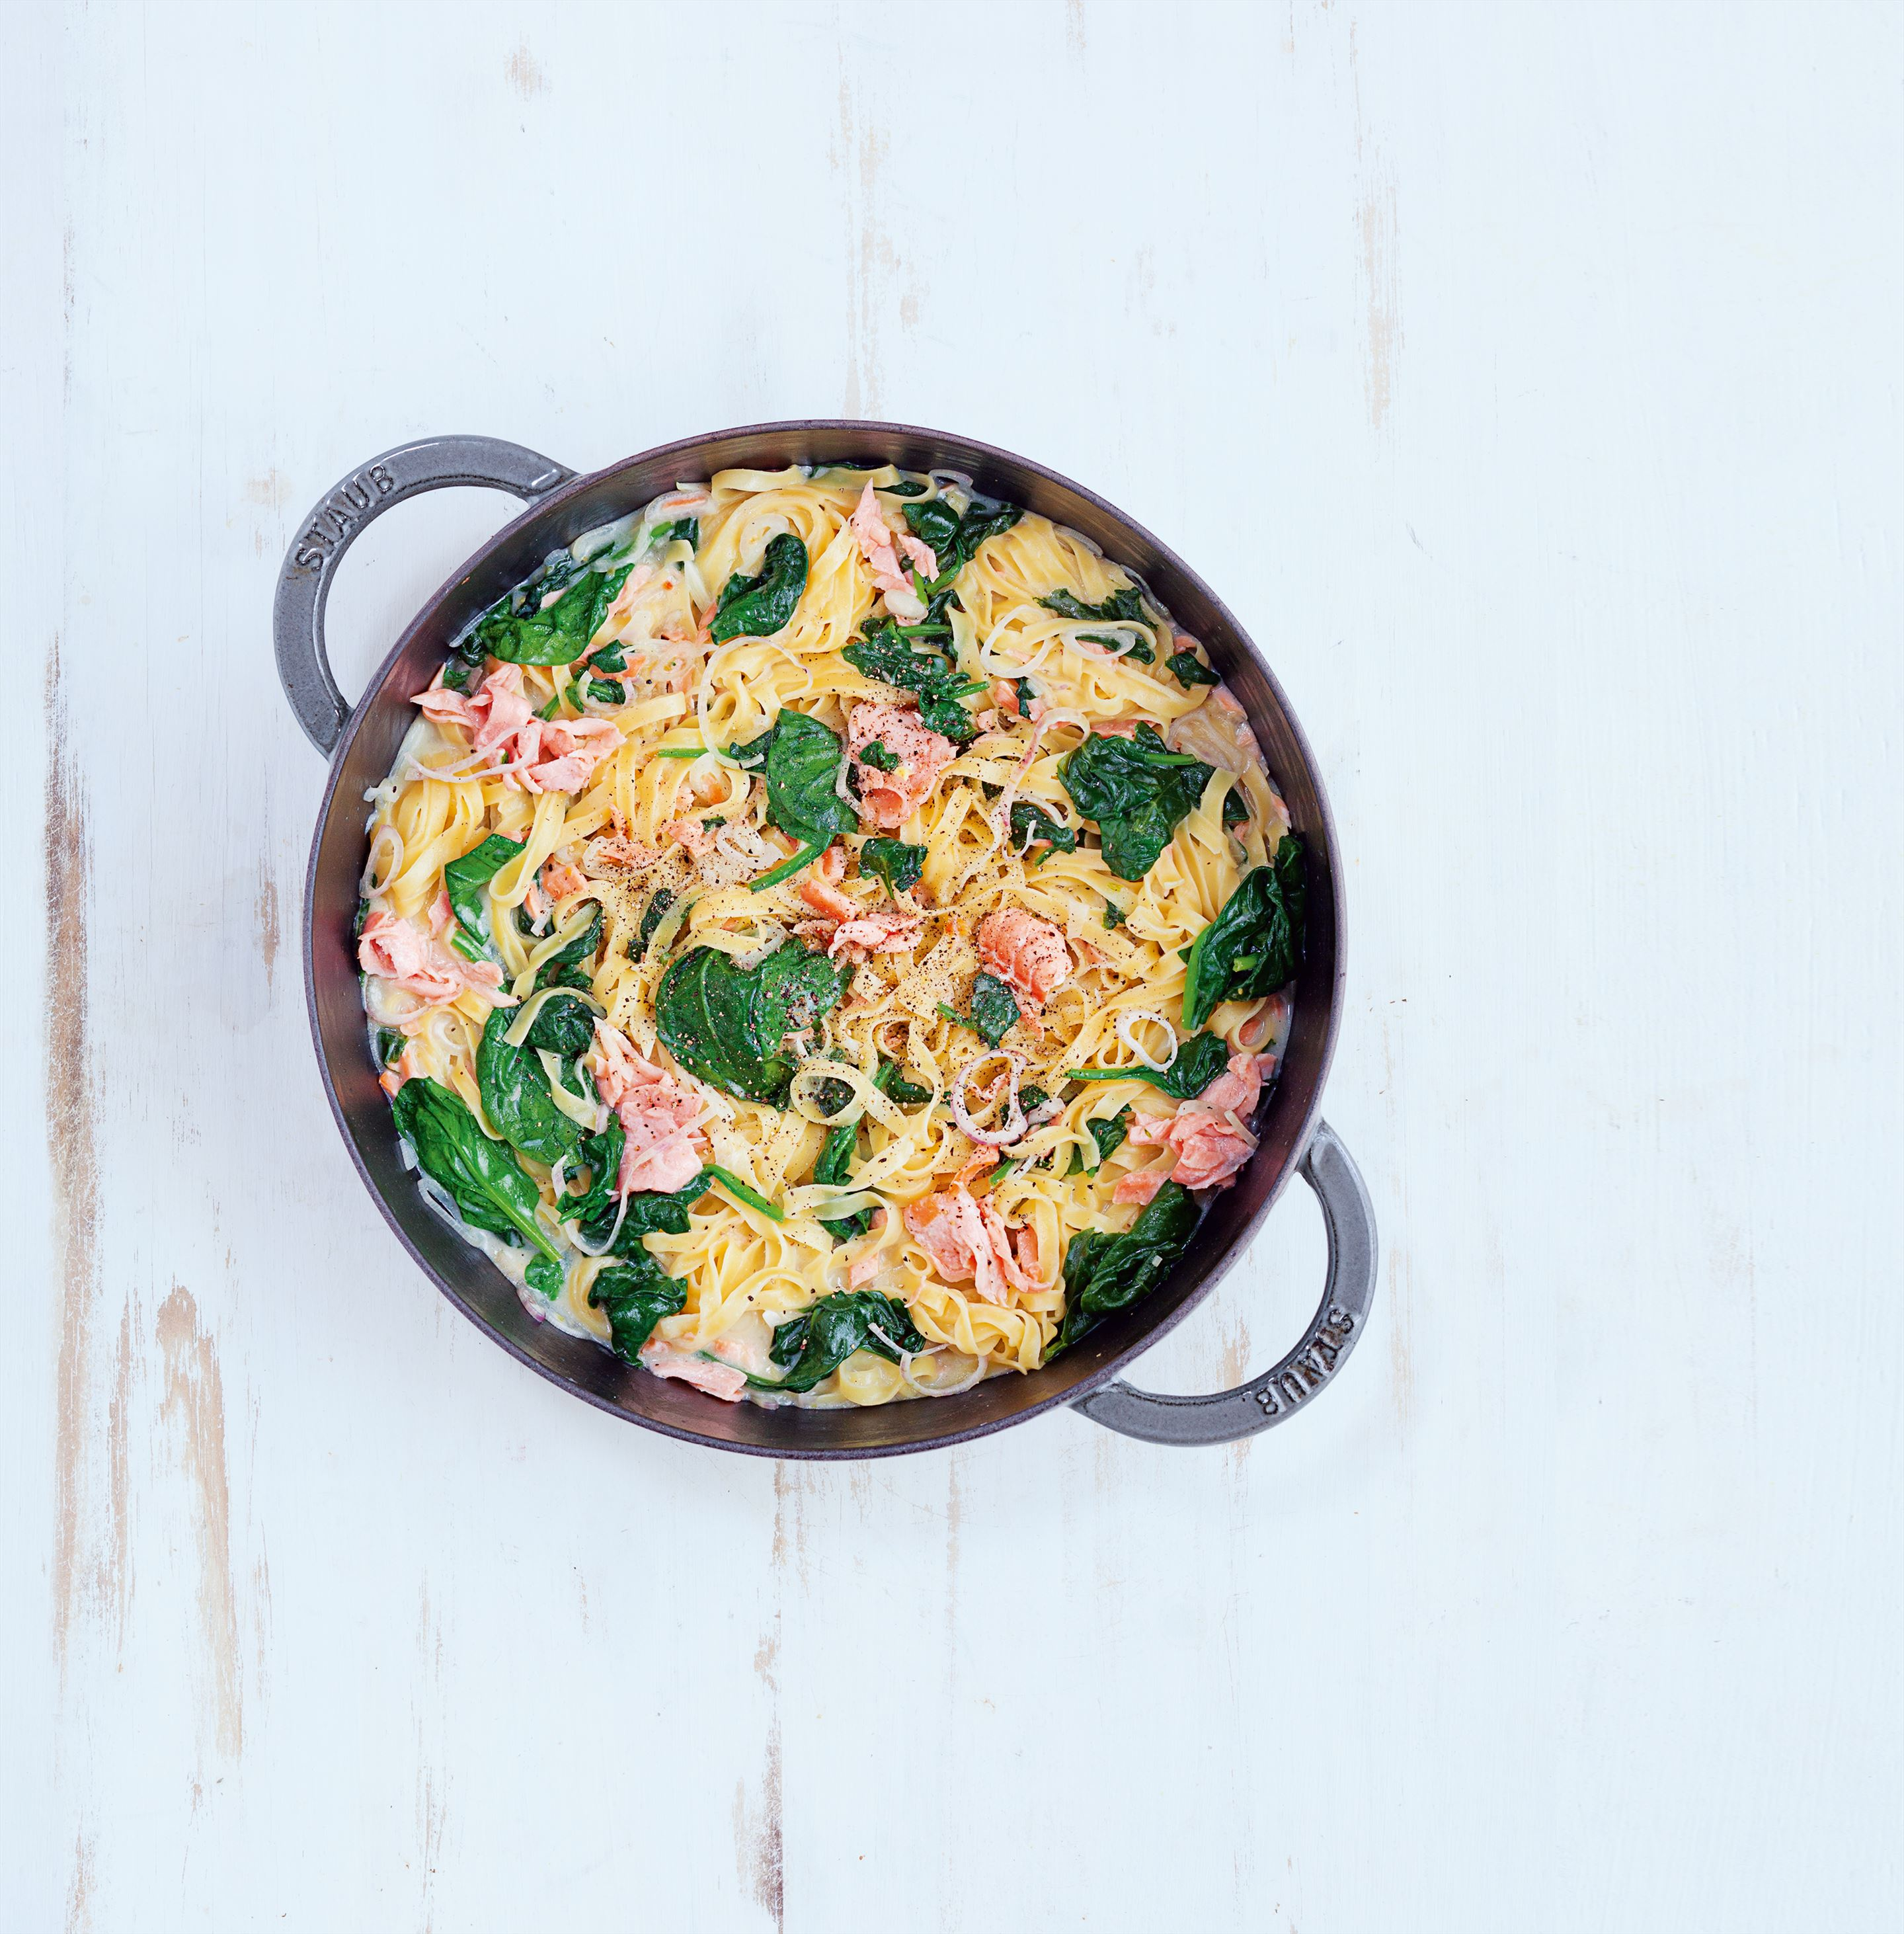 Spinach and smoked salmon